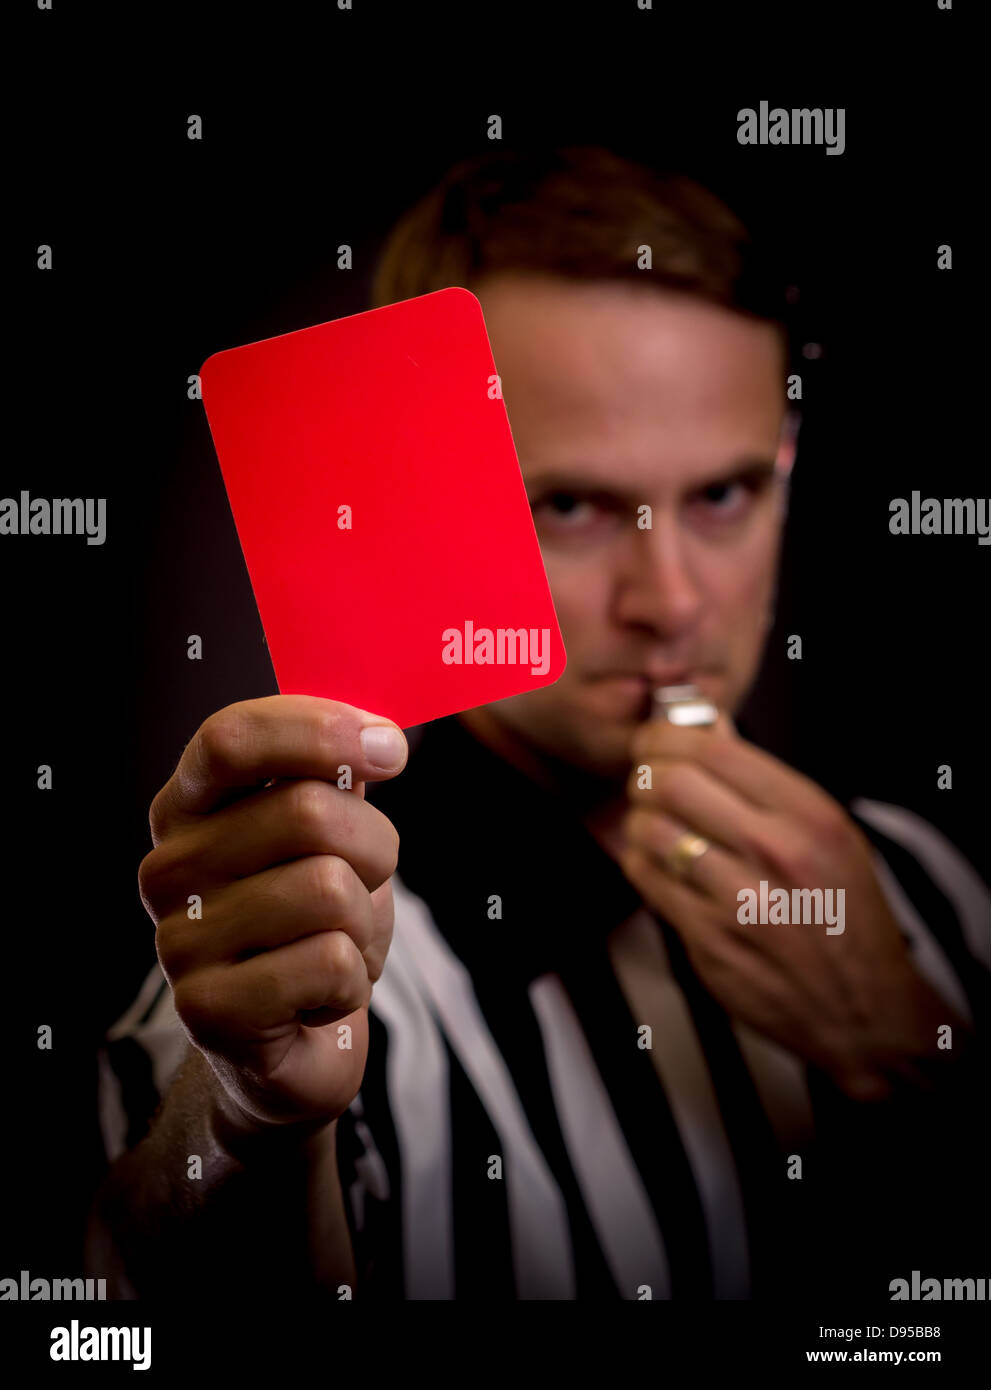 Referee holding red card for foul concept - Stock Image